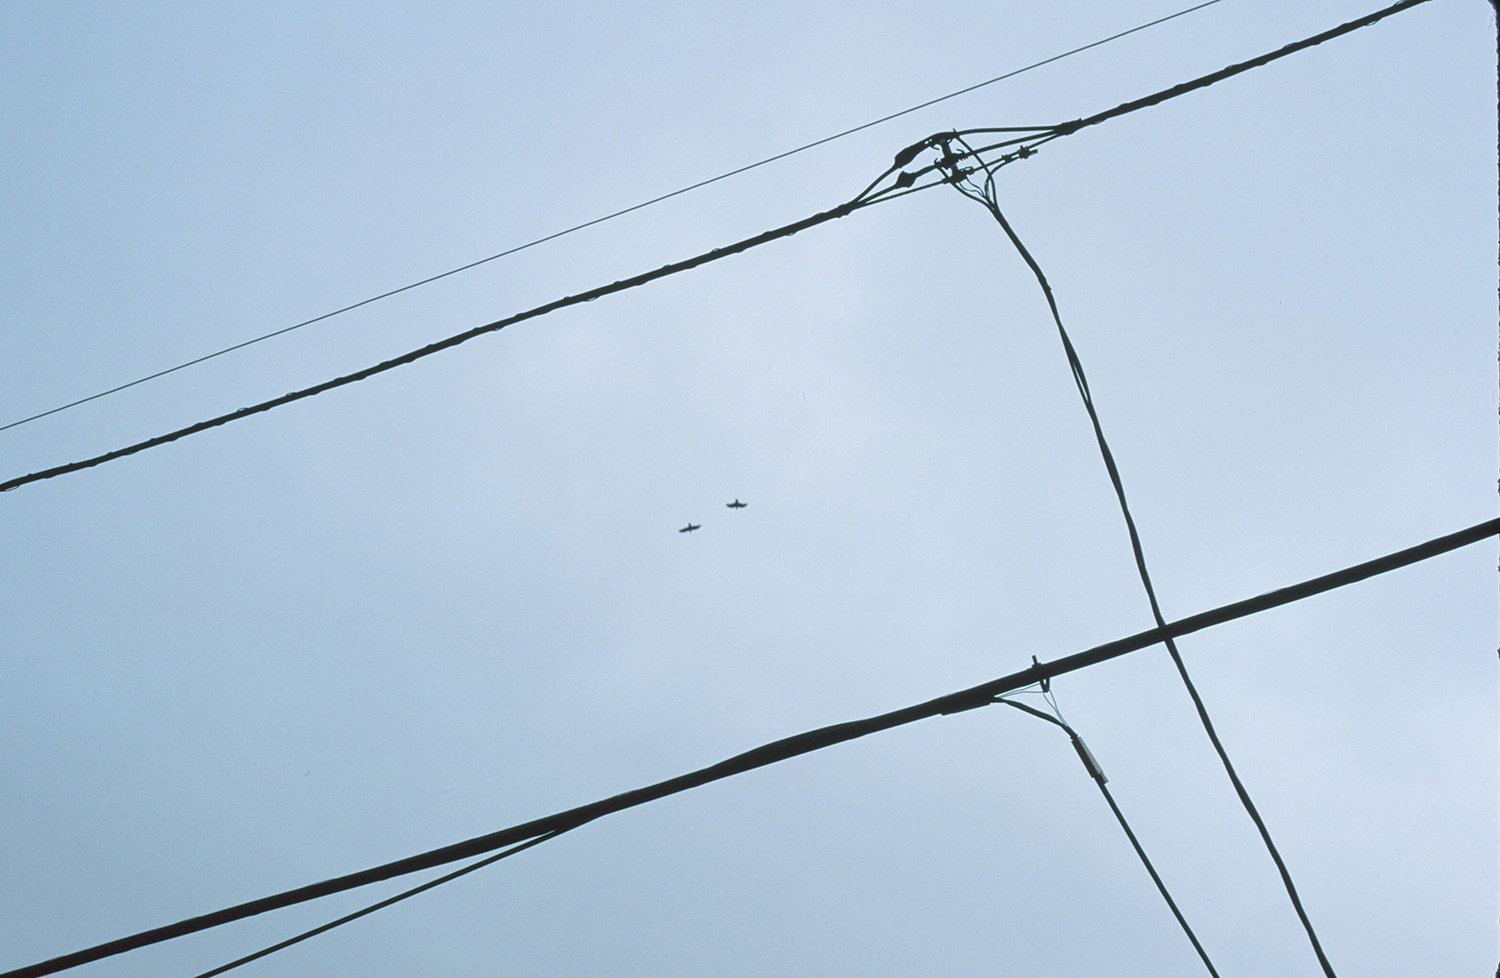 Hex Telephone Wires And Birds In Flight White Deetchums Wiring Cable